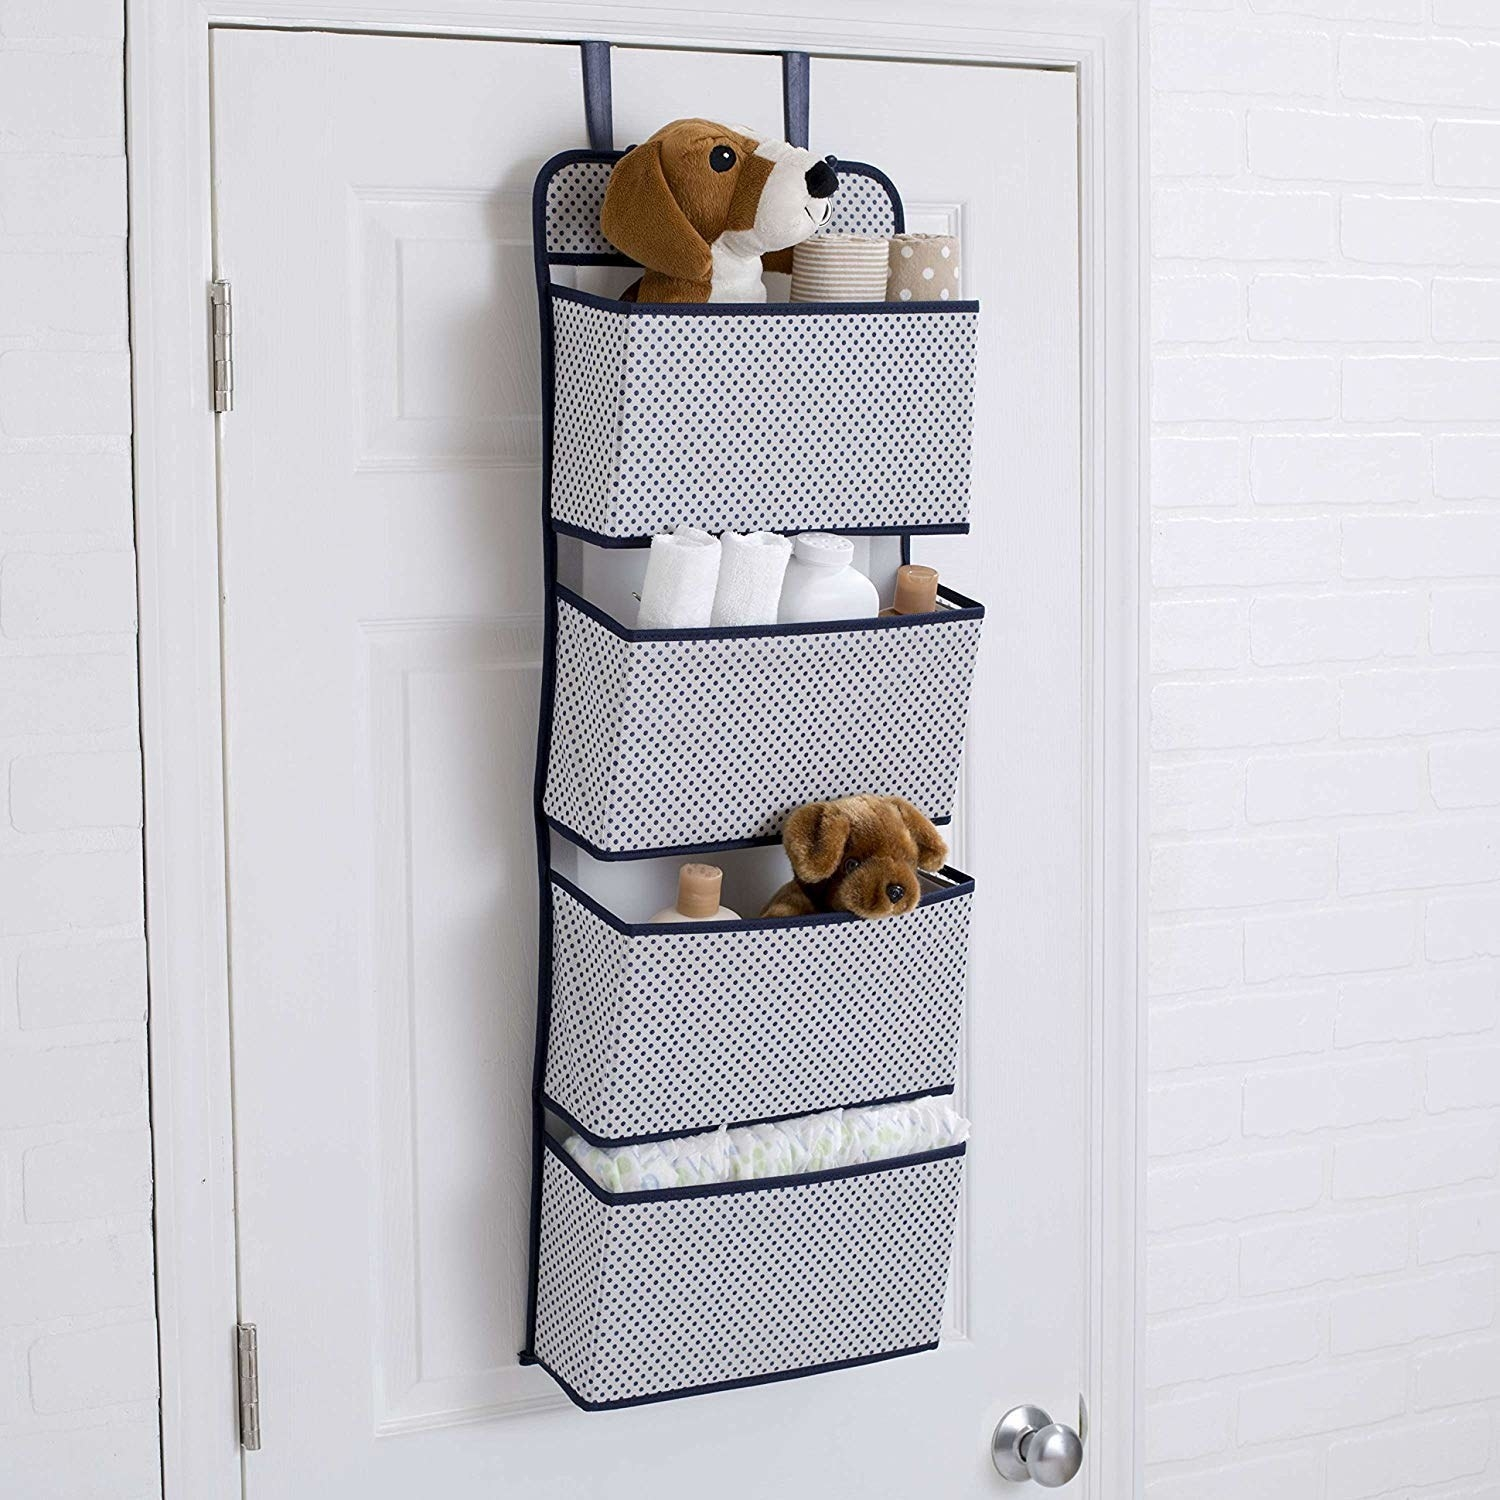 A grey over-the-door organiser with toys in it